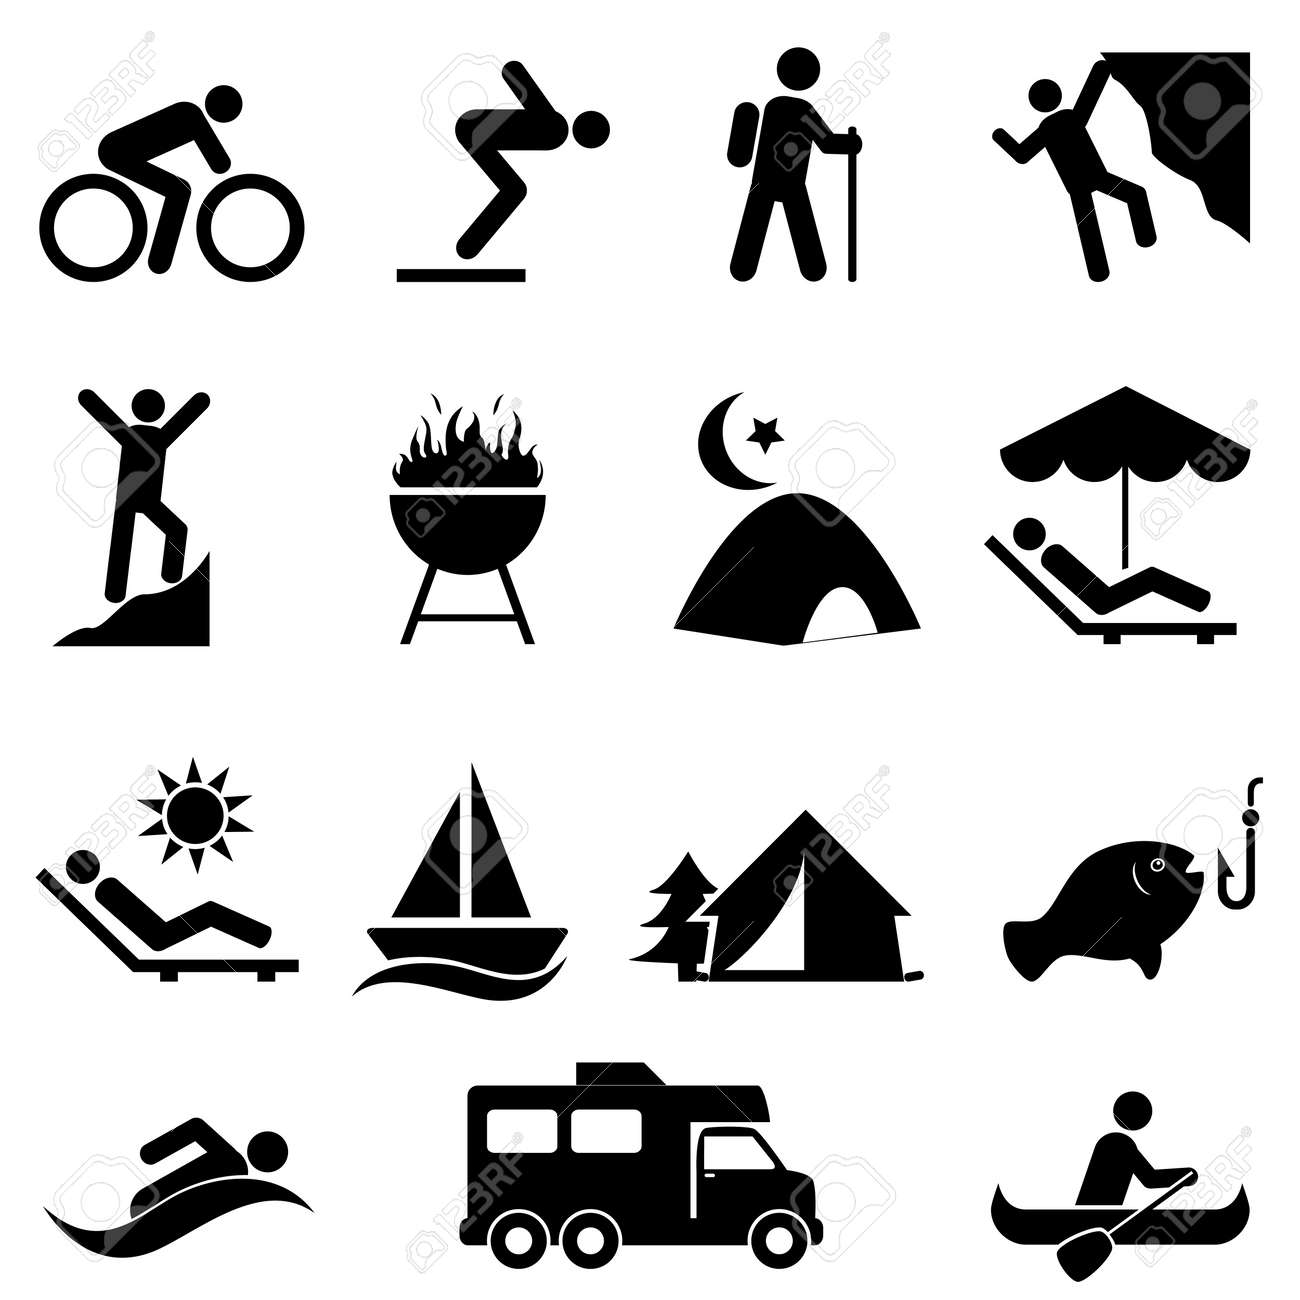 Outdoor, leisure and recreation icon set - 42540725